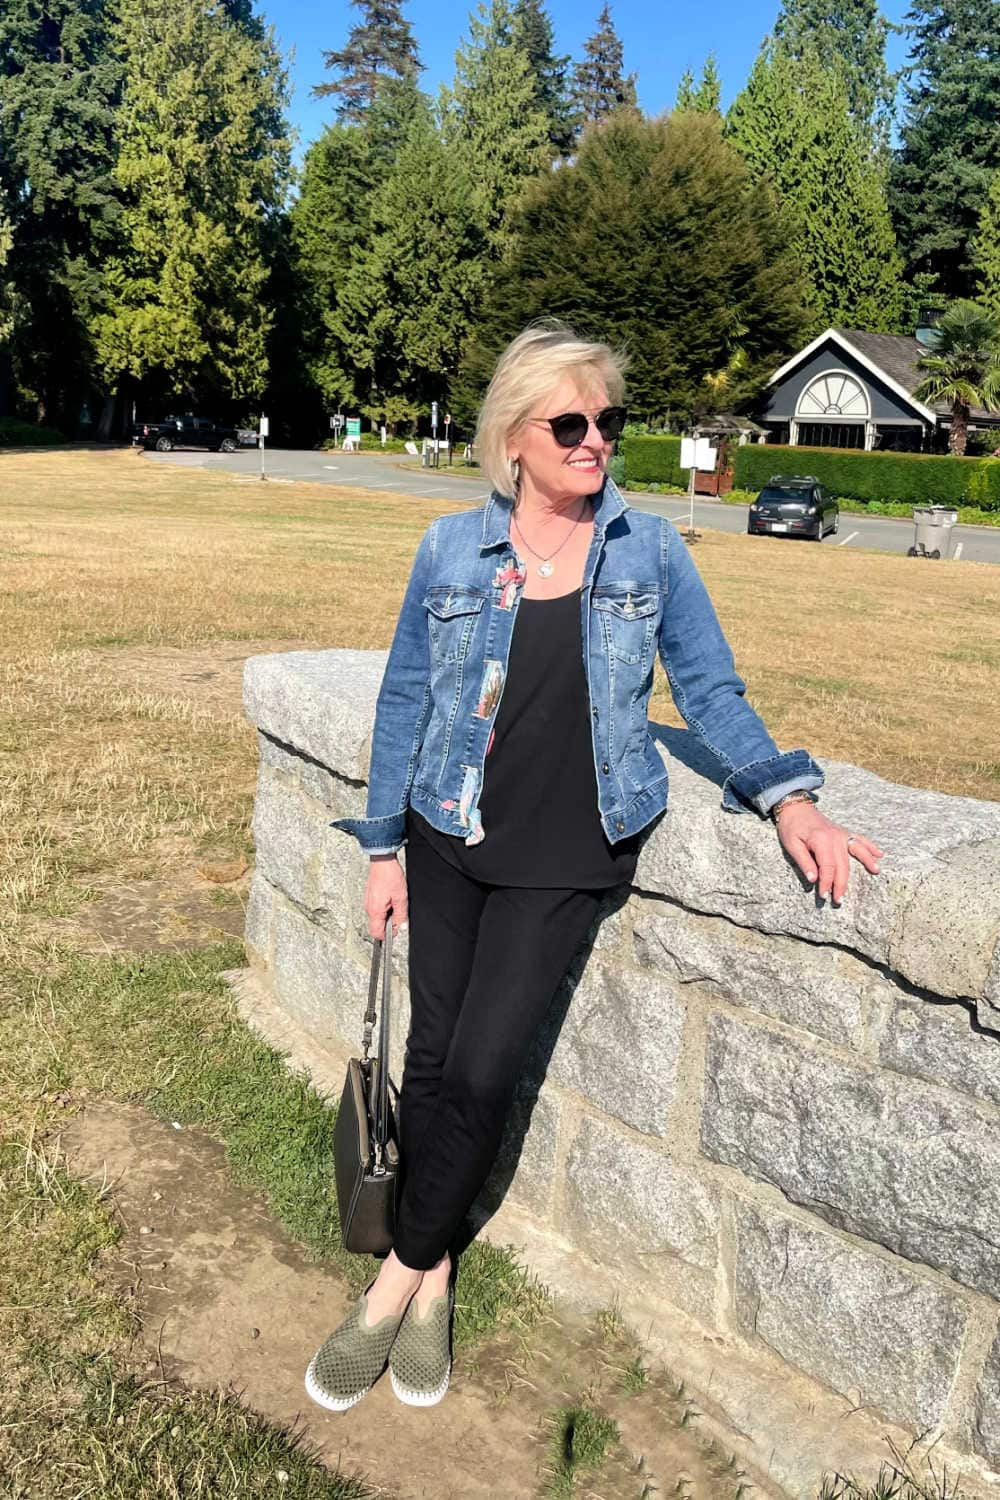 blonde woman wearing black outfit with denim jacket